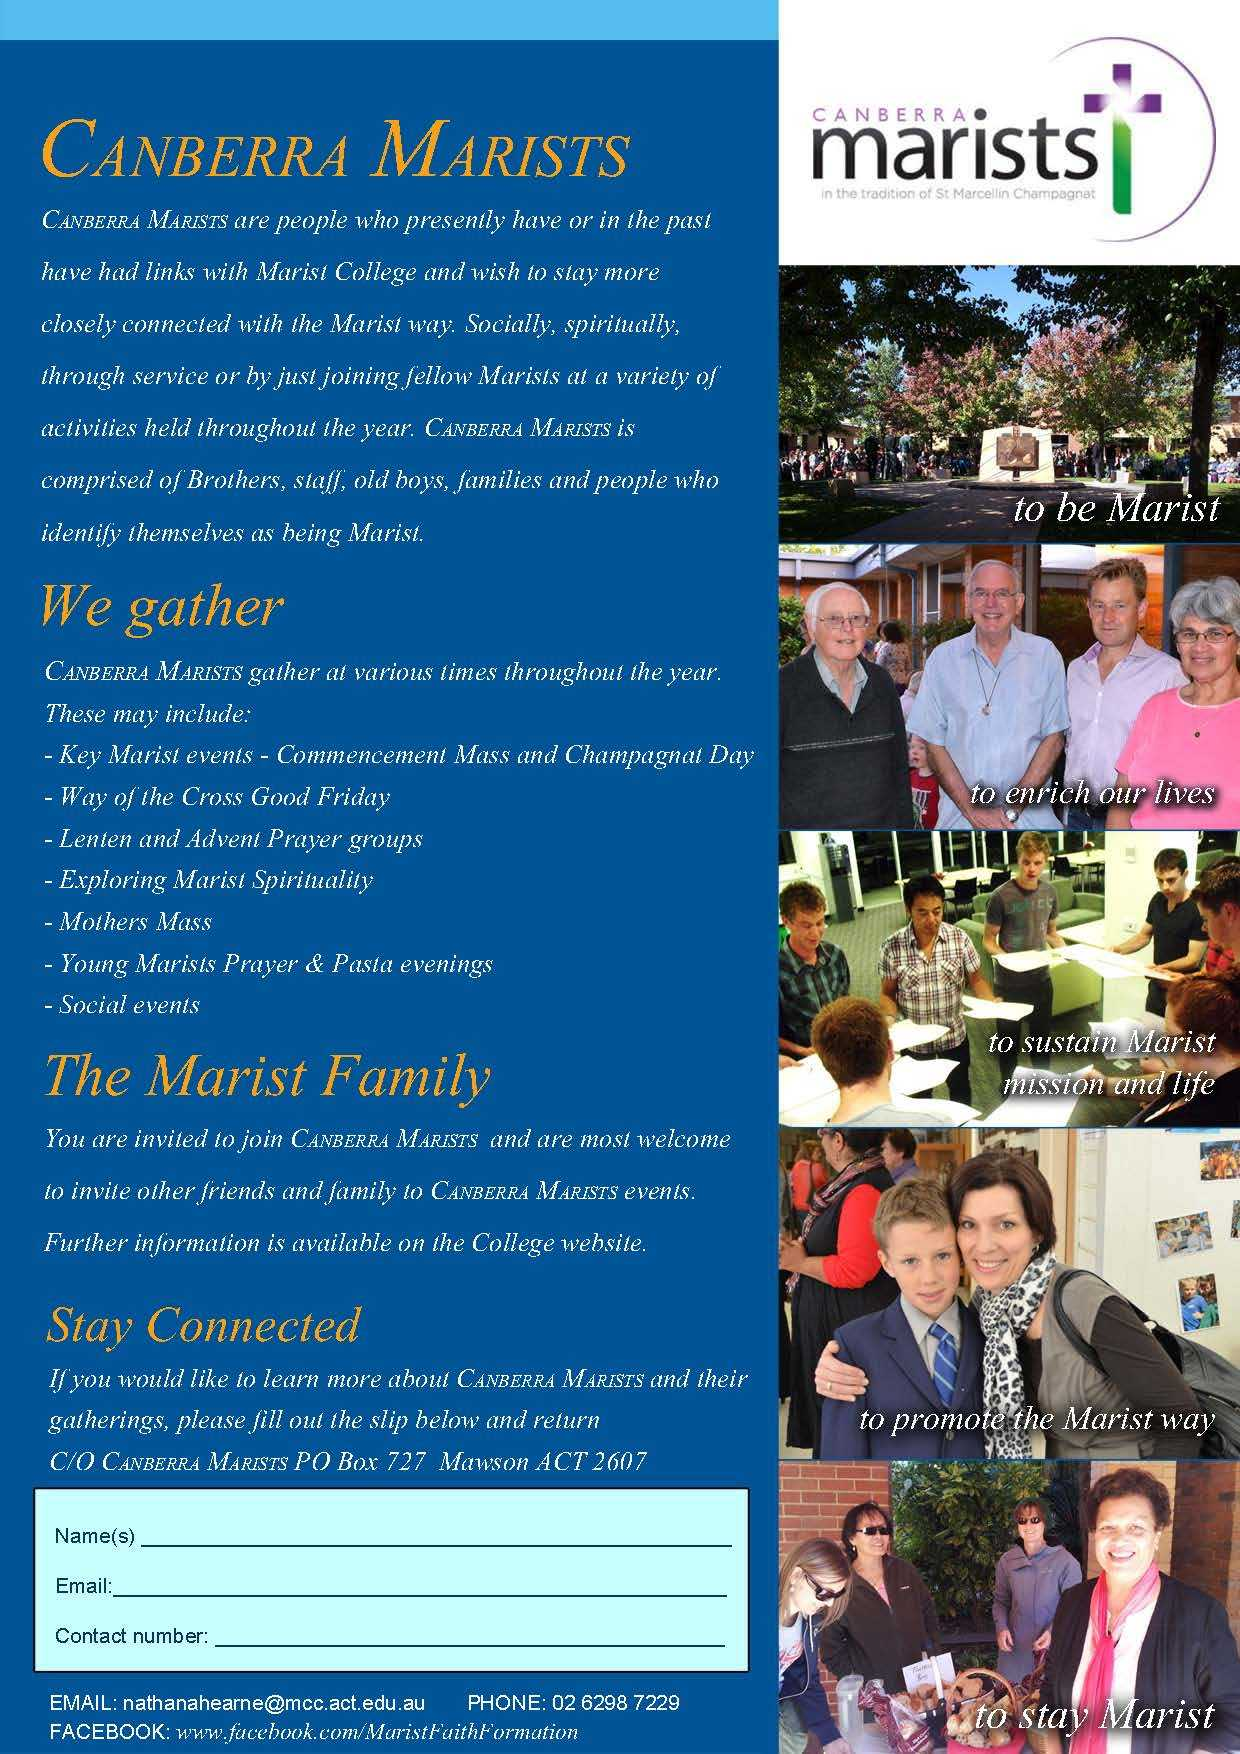 Canberra Marists flyer